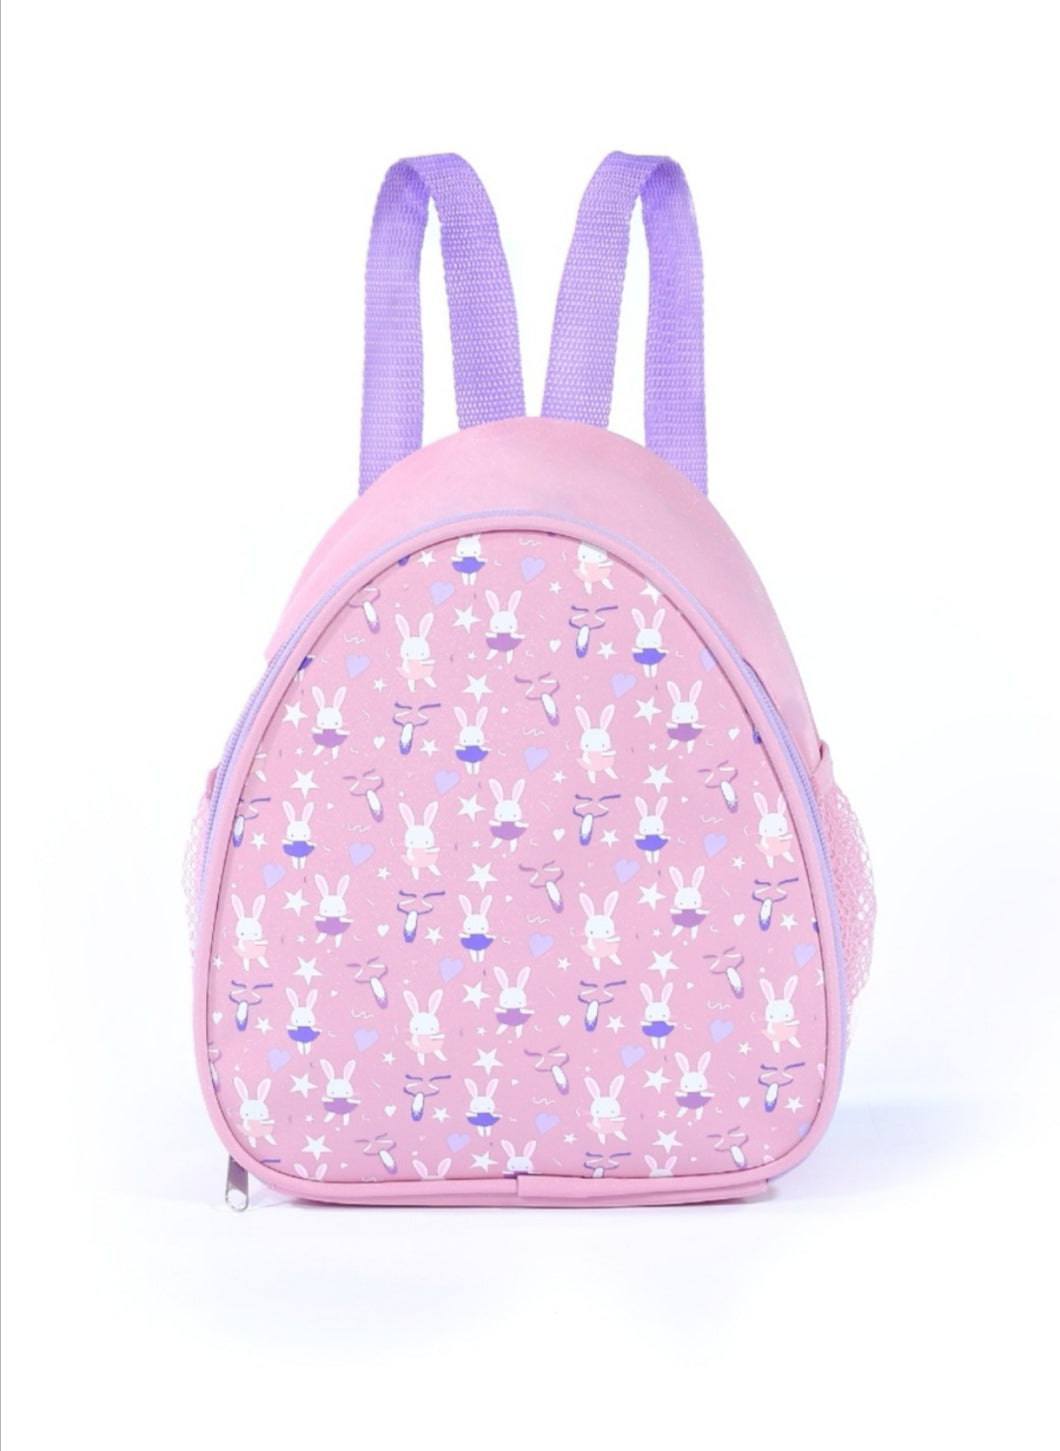 Roch Valley Bunny Backpack - Strictly Dancing